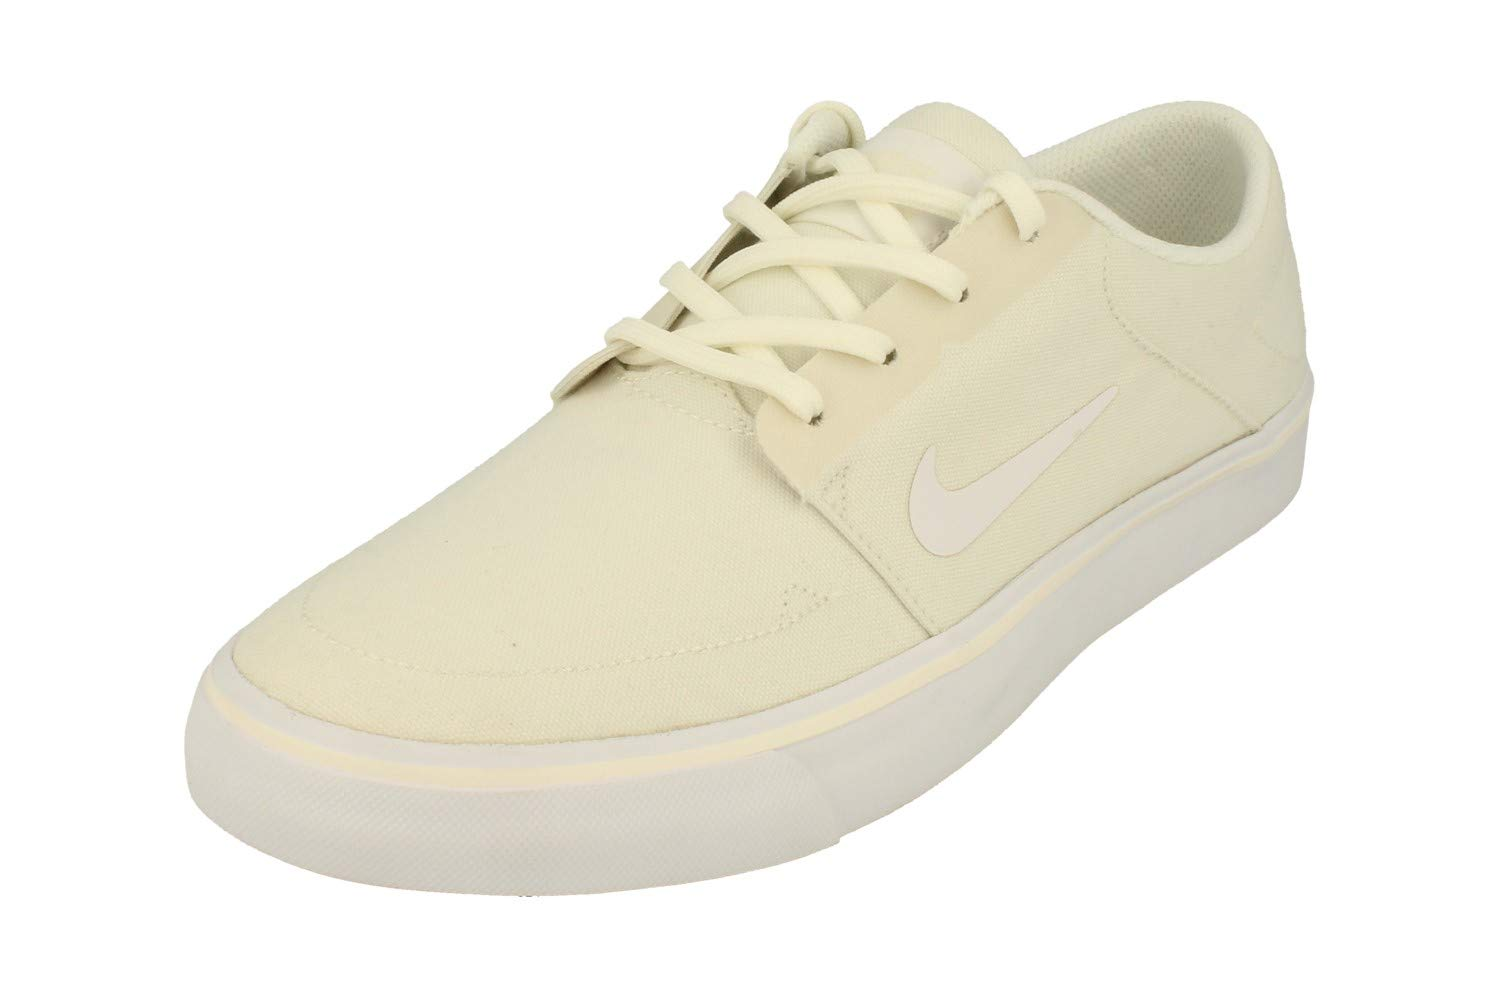 33162c0609b233 Galleon - Nike SB Portmore Canvas Mens Trainers 723874 Sneakers Shoes (UK 6  US 7 EU 40, Sail White 111)